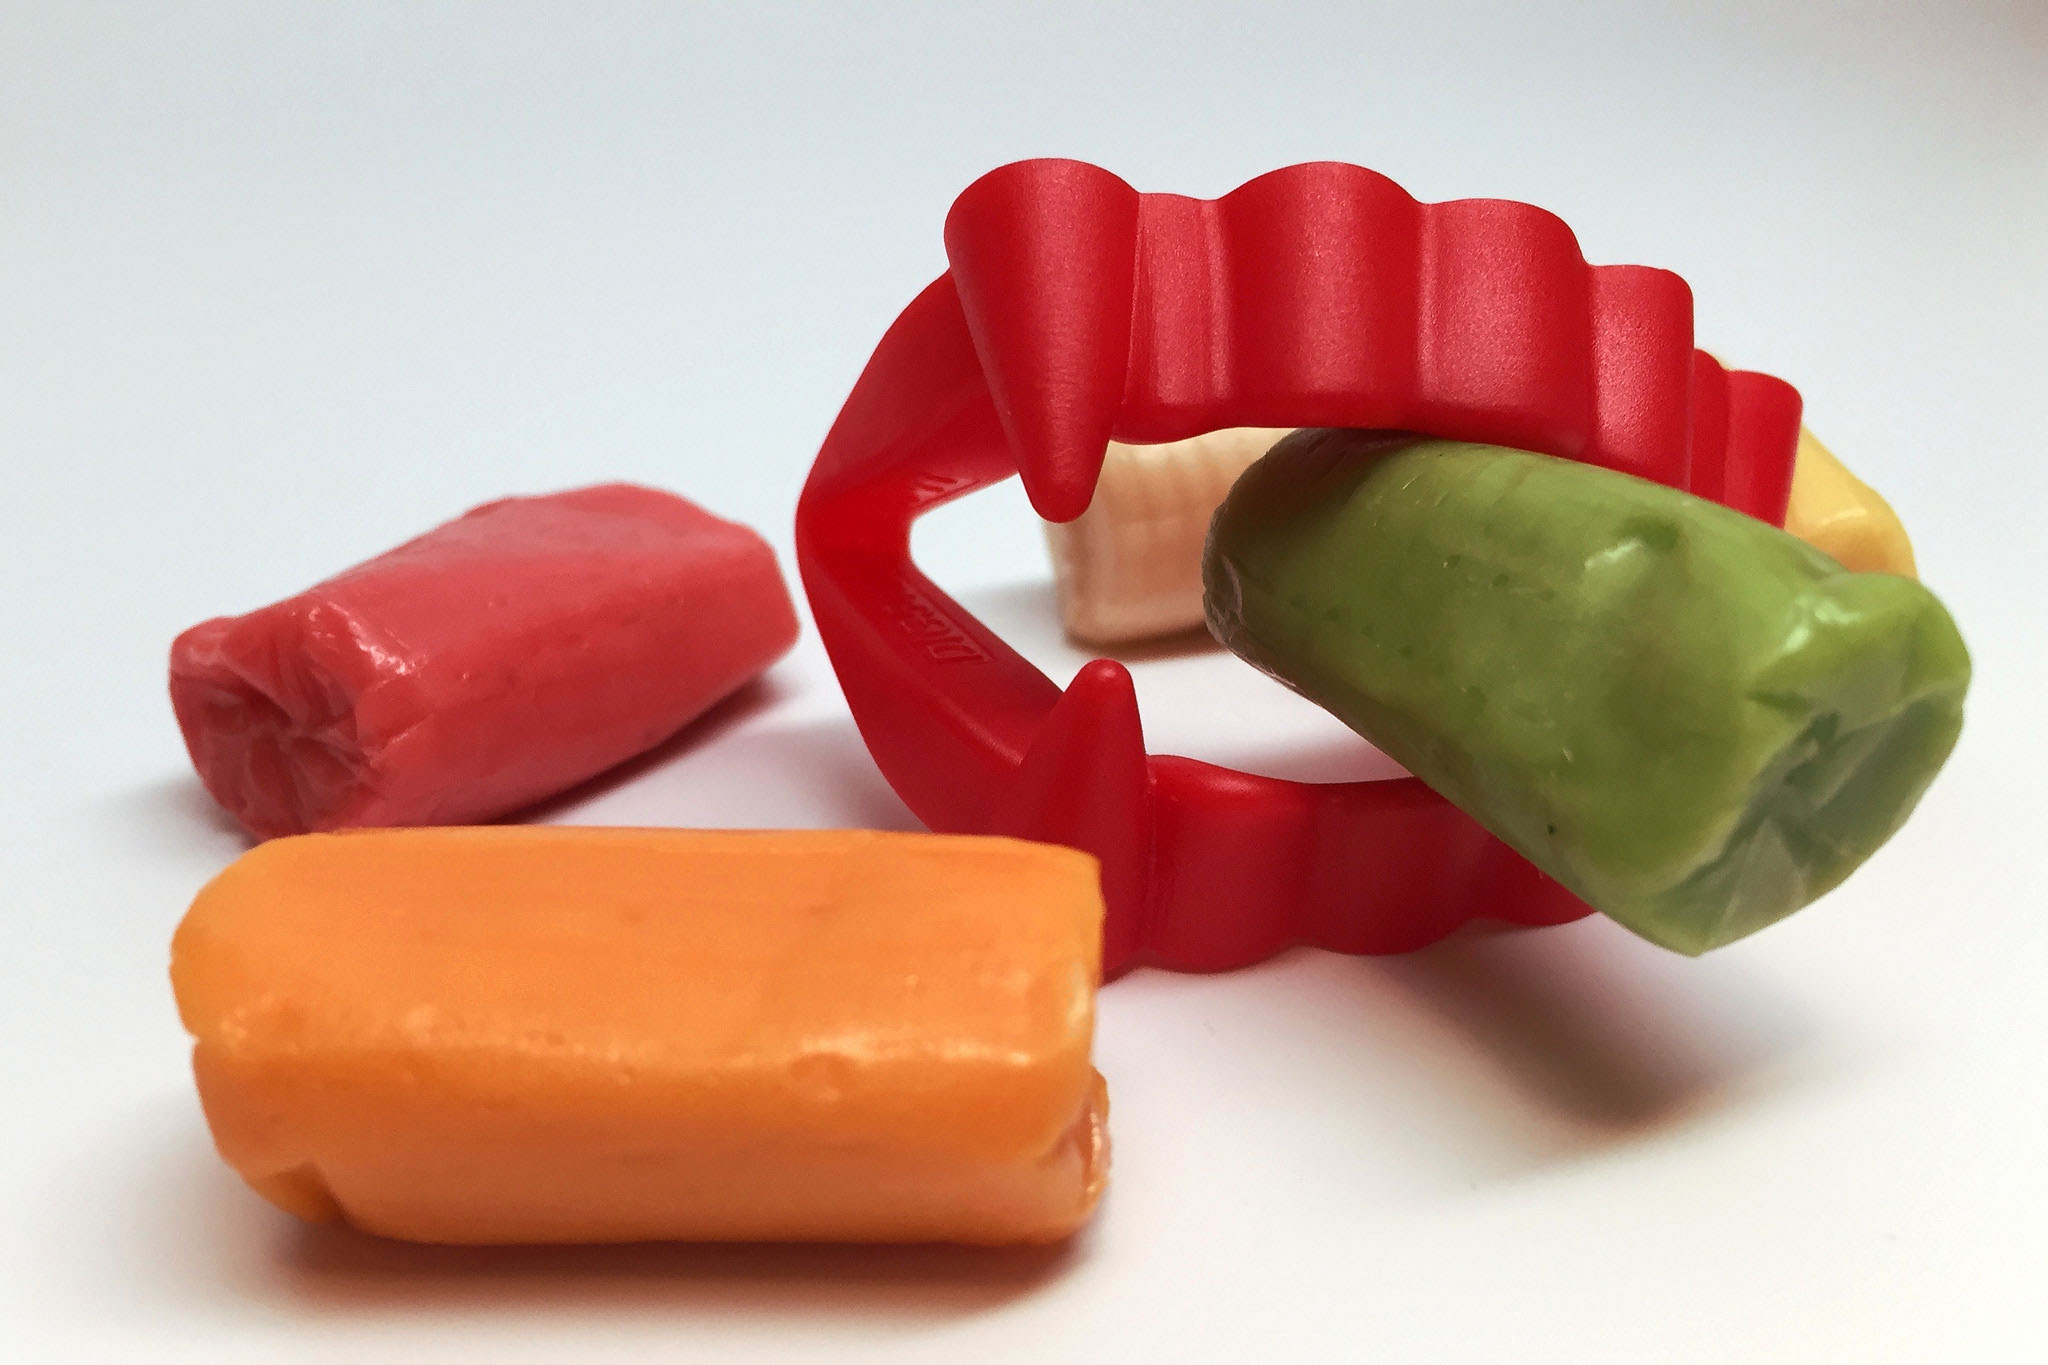 Red plastic vampire teeth and some candies. (NIAID, Flickr)